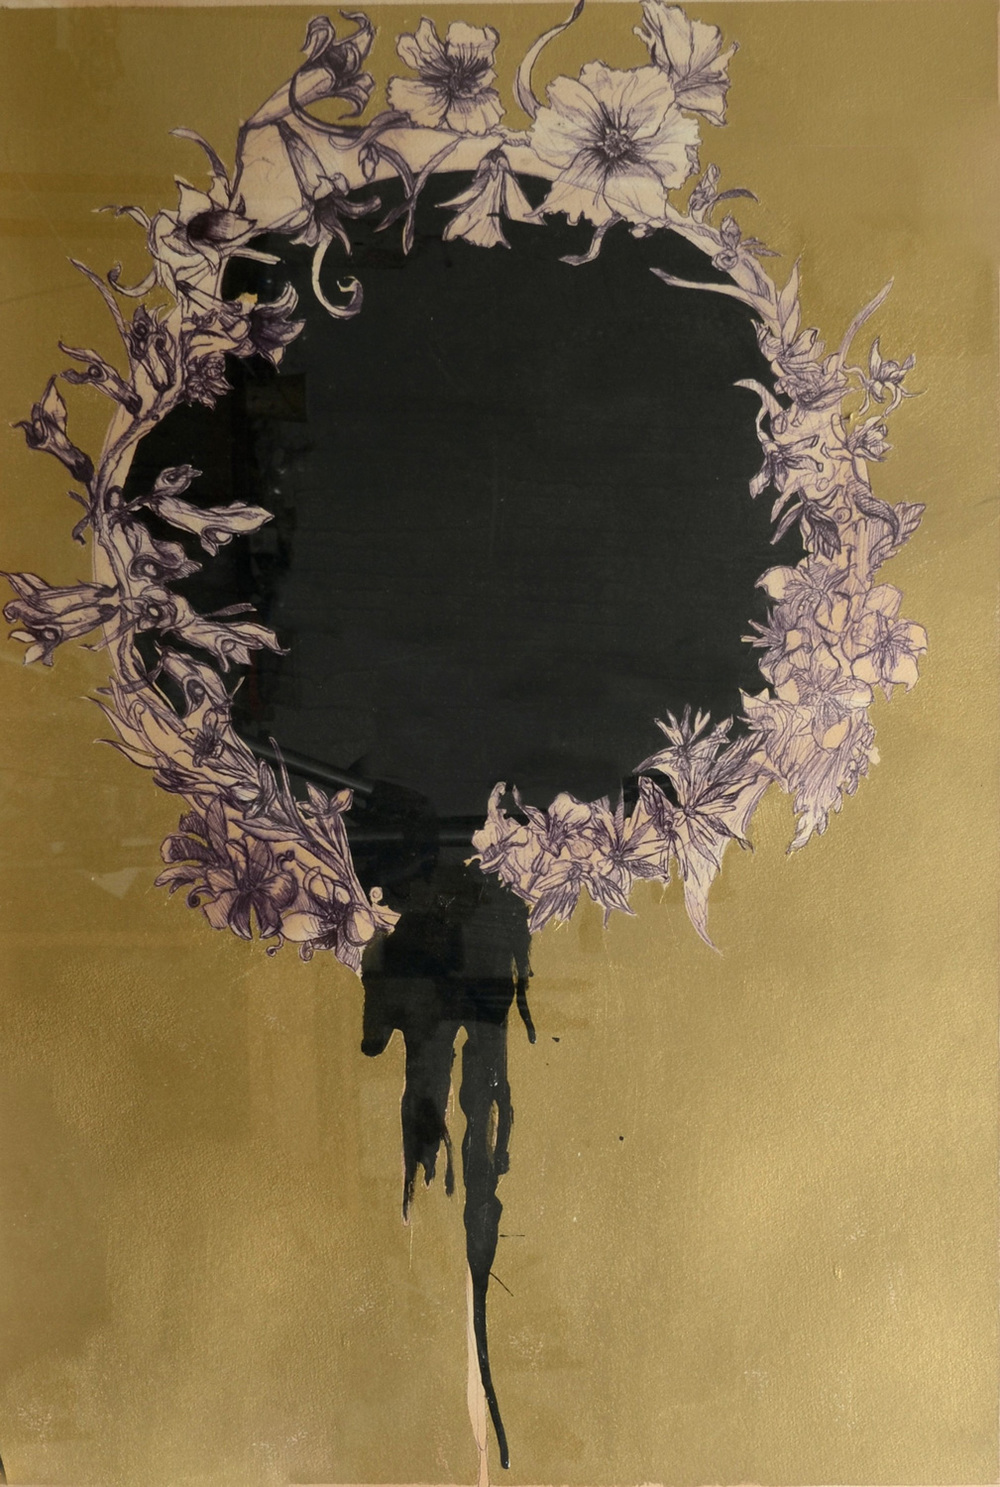 Wreath, Mixed media on paper, 110x80 cm, 2012